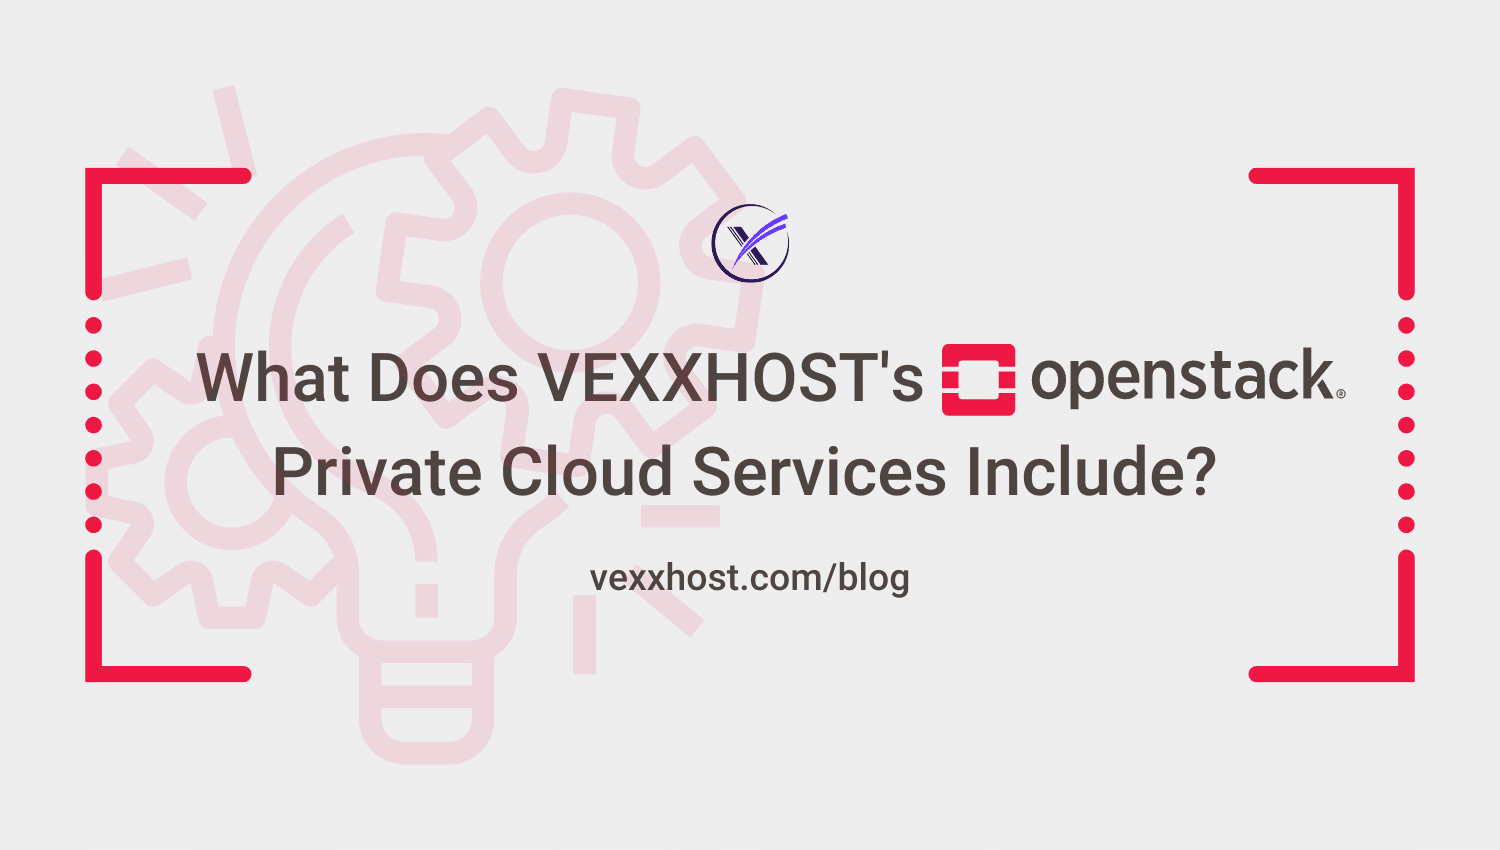 vexxhost openstack private cloud services blog header